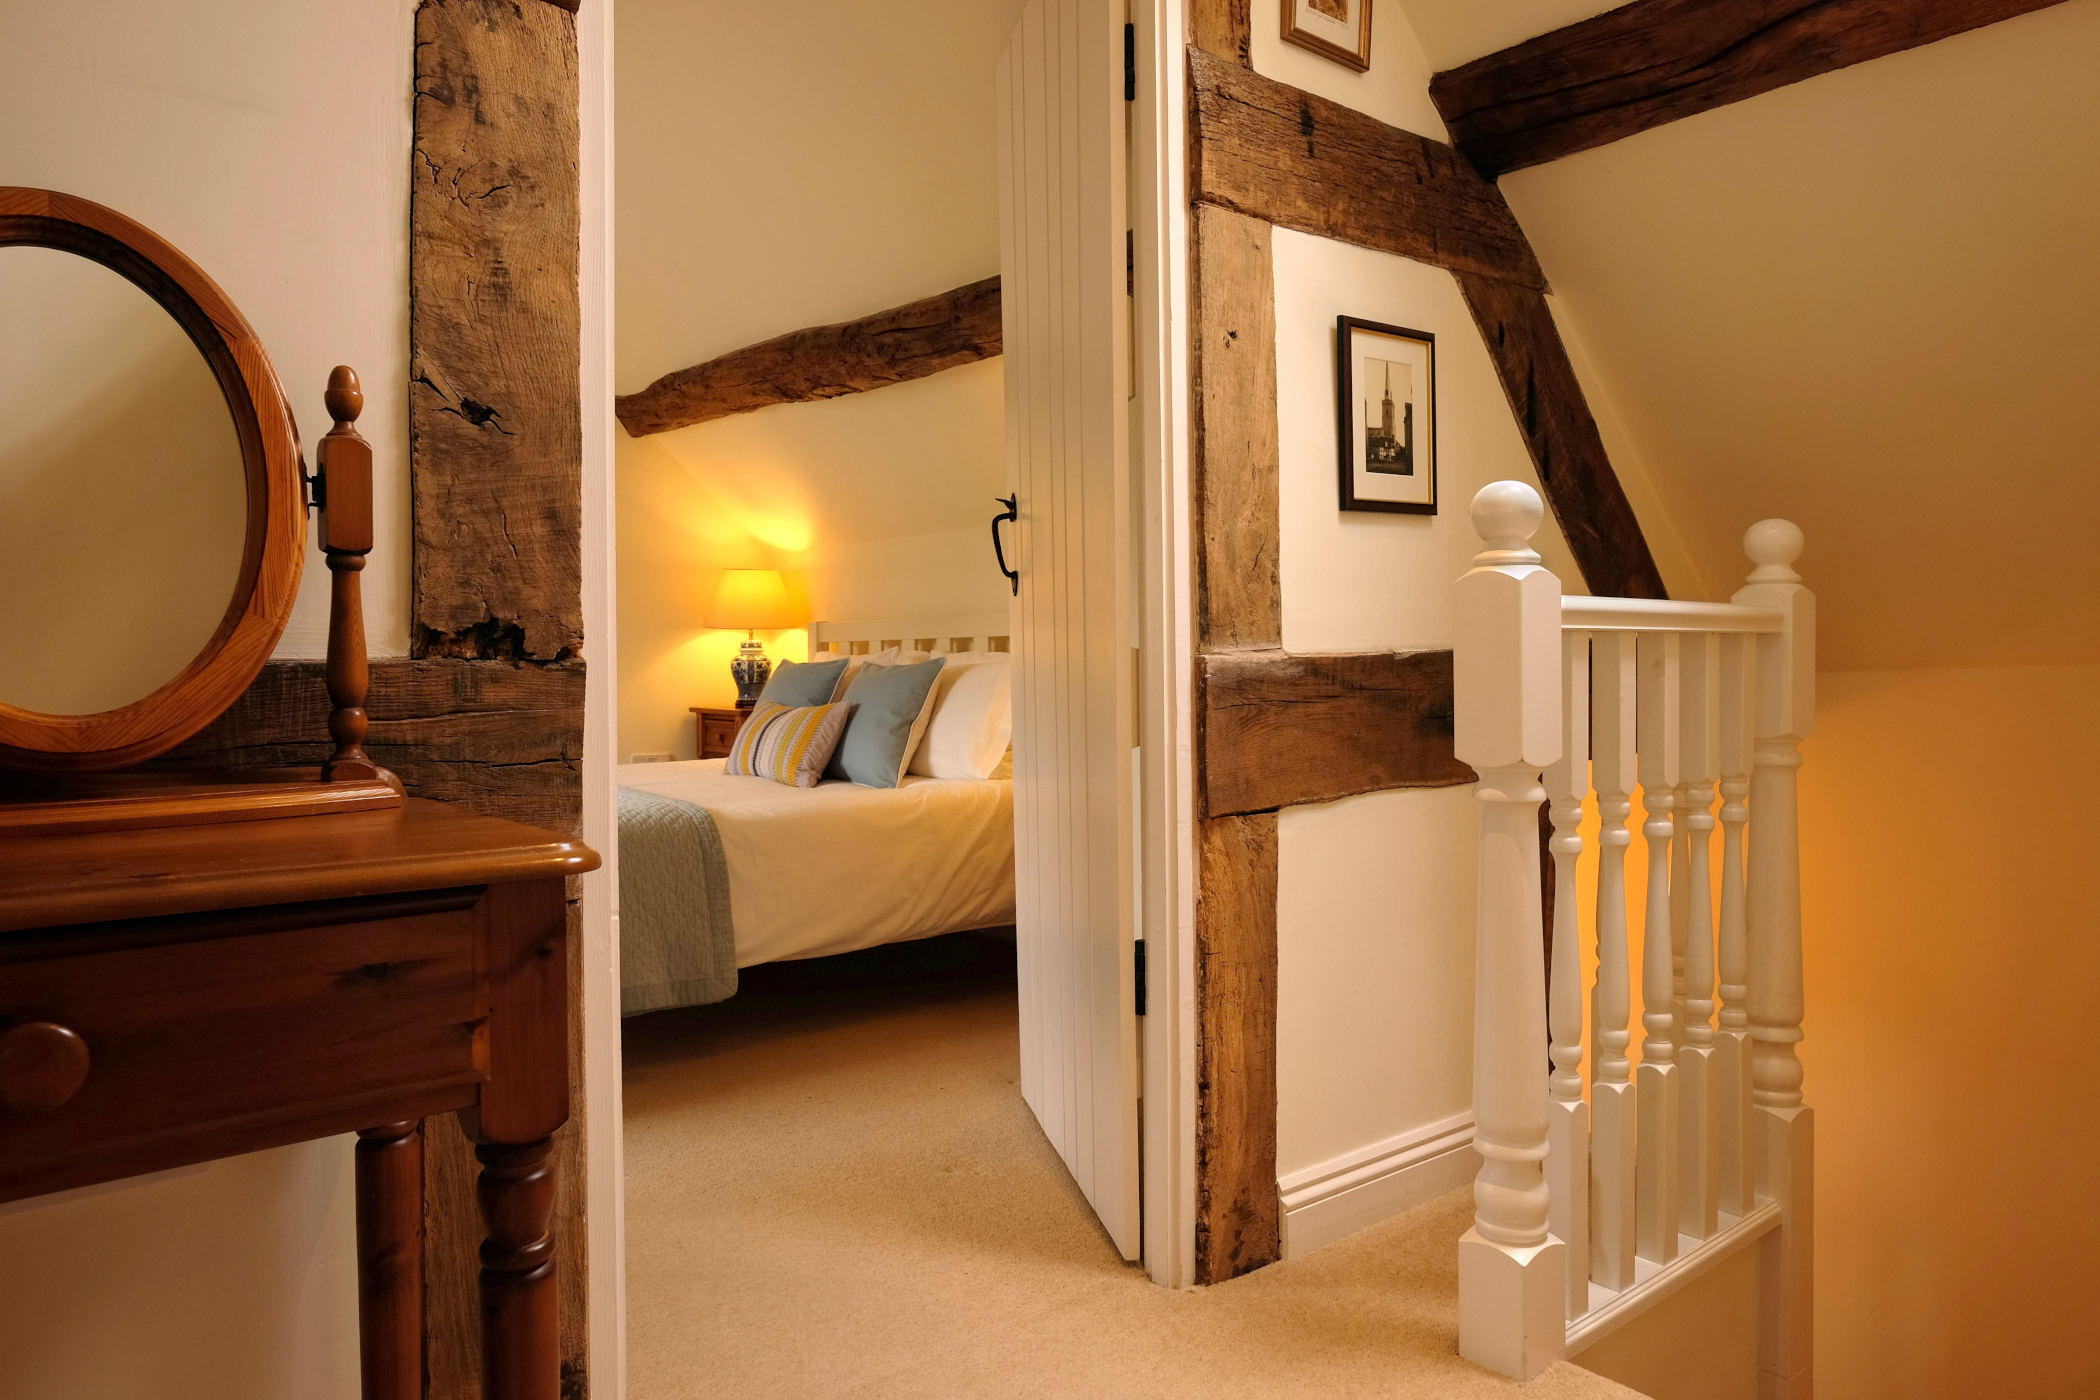 Characterful exposed beams